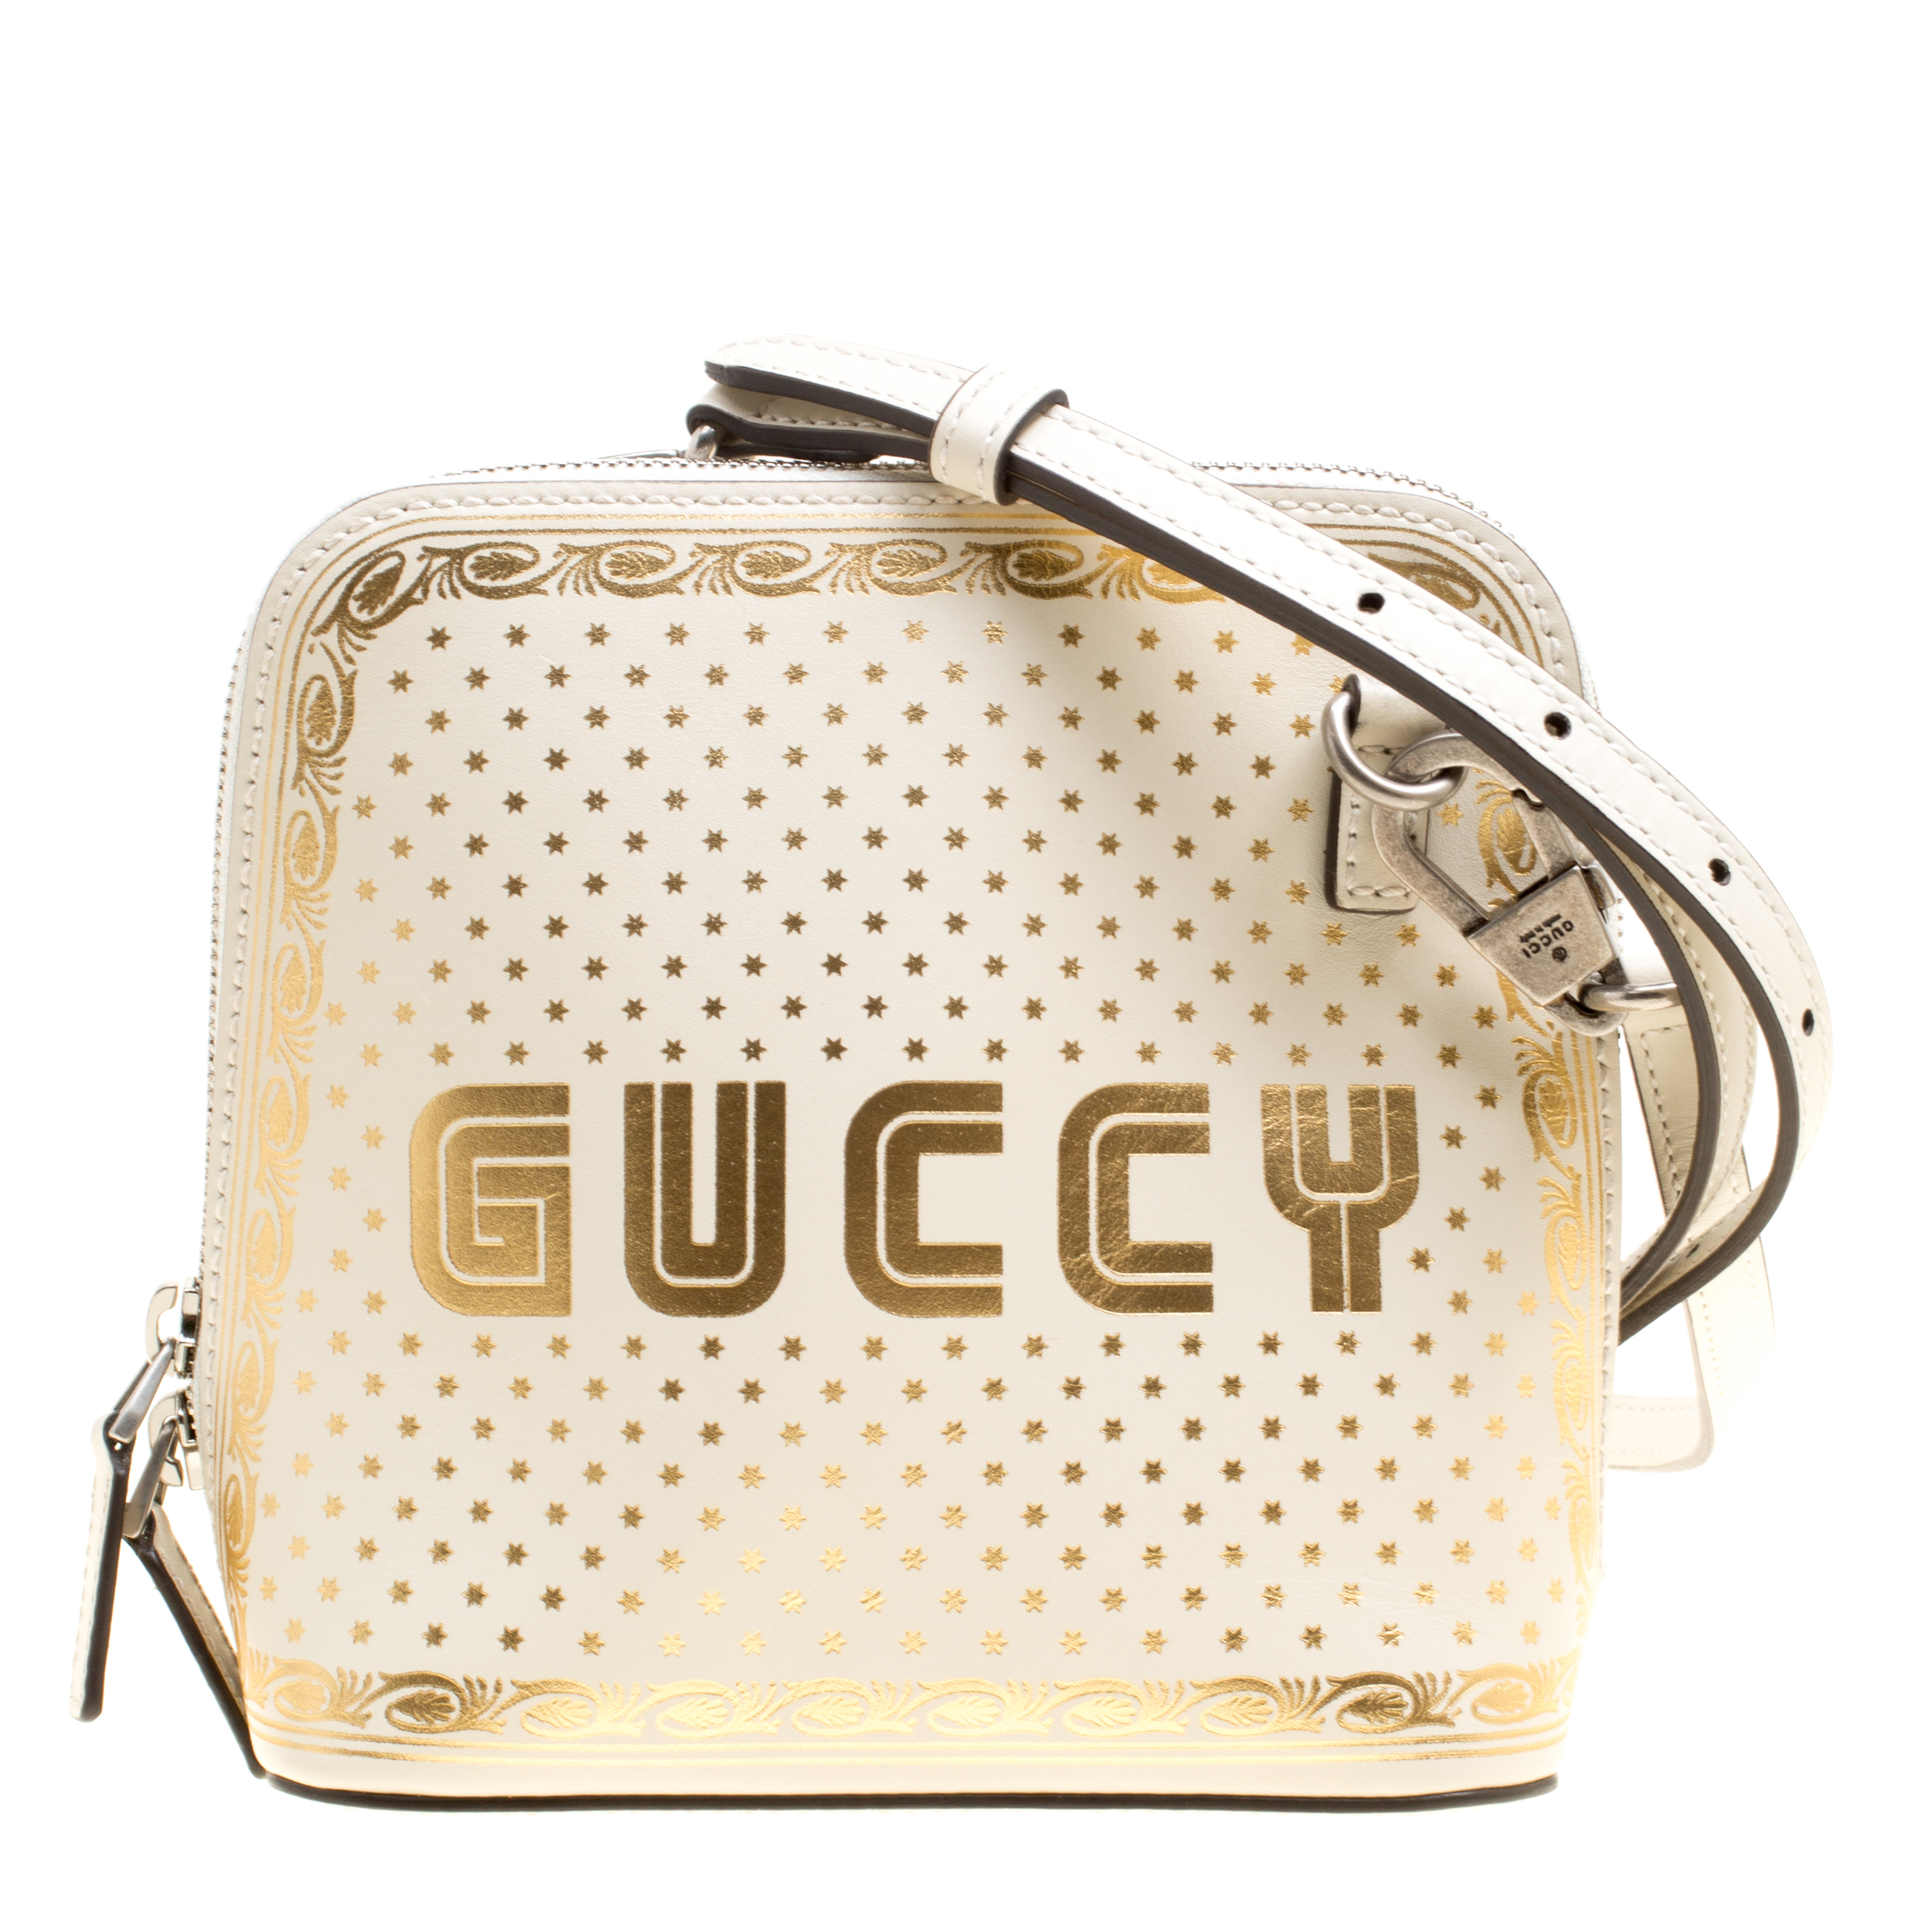 b787d5c7a757 Buy Gucci White/Gold Leather Mini Guccy Shoulder Bag 156900 at best ...